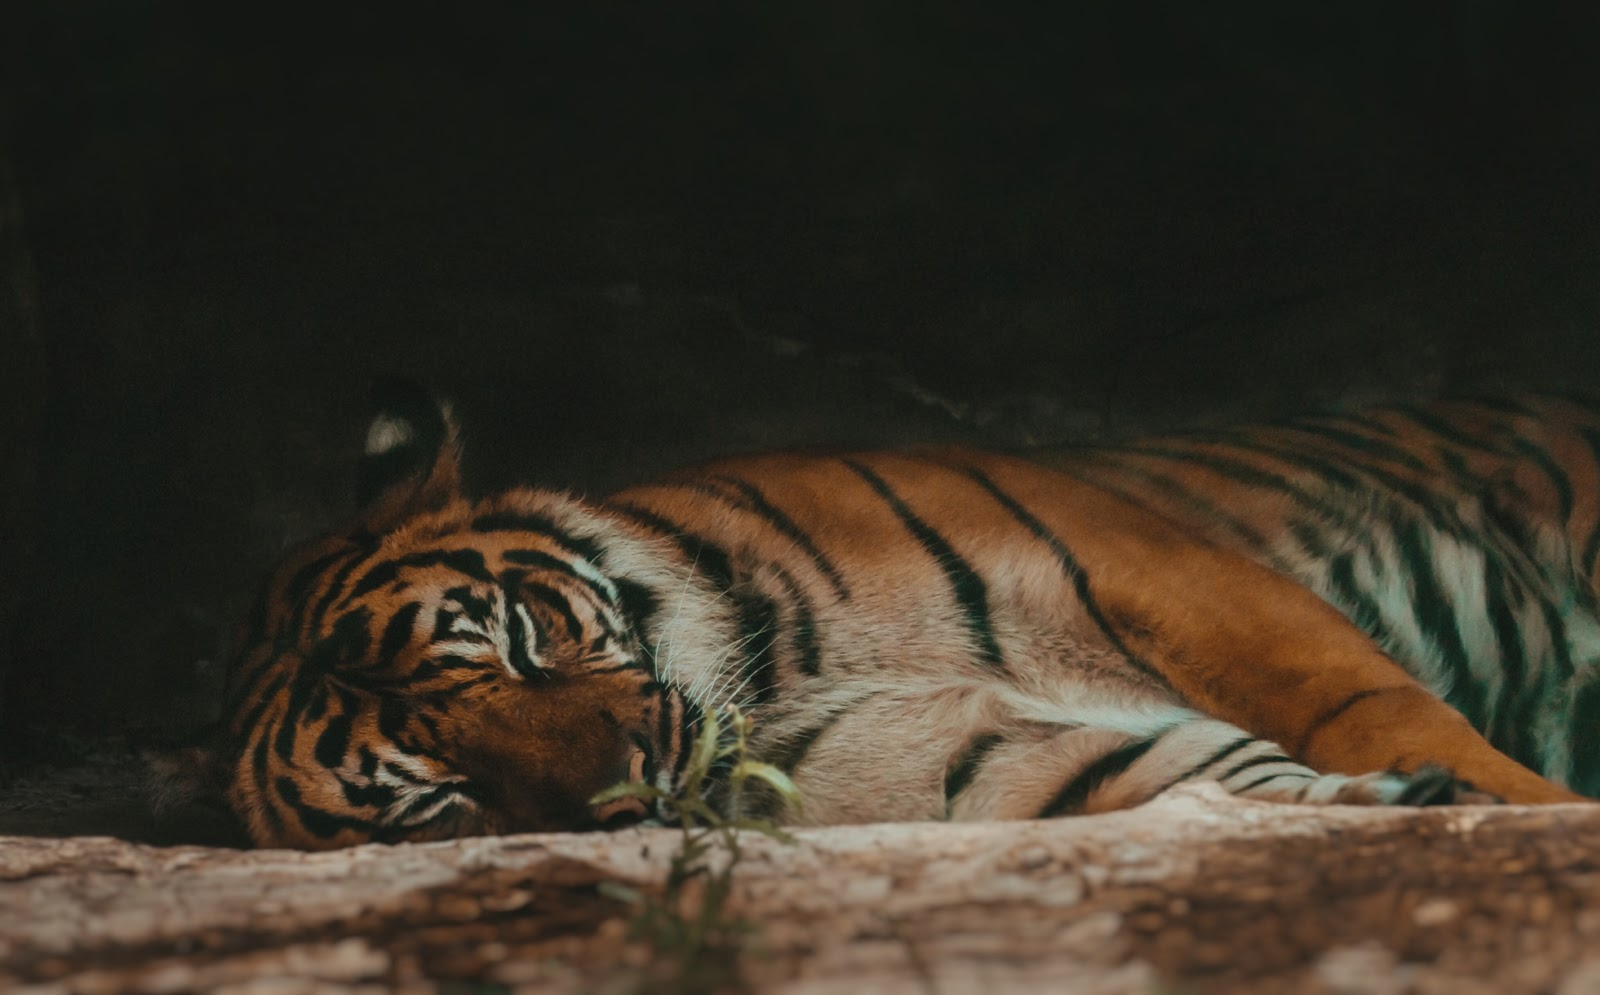 tiger-sleeping-and-taking-rest-pictures